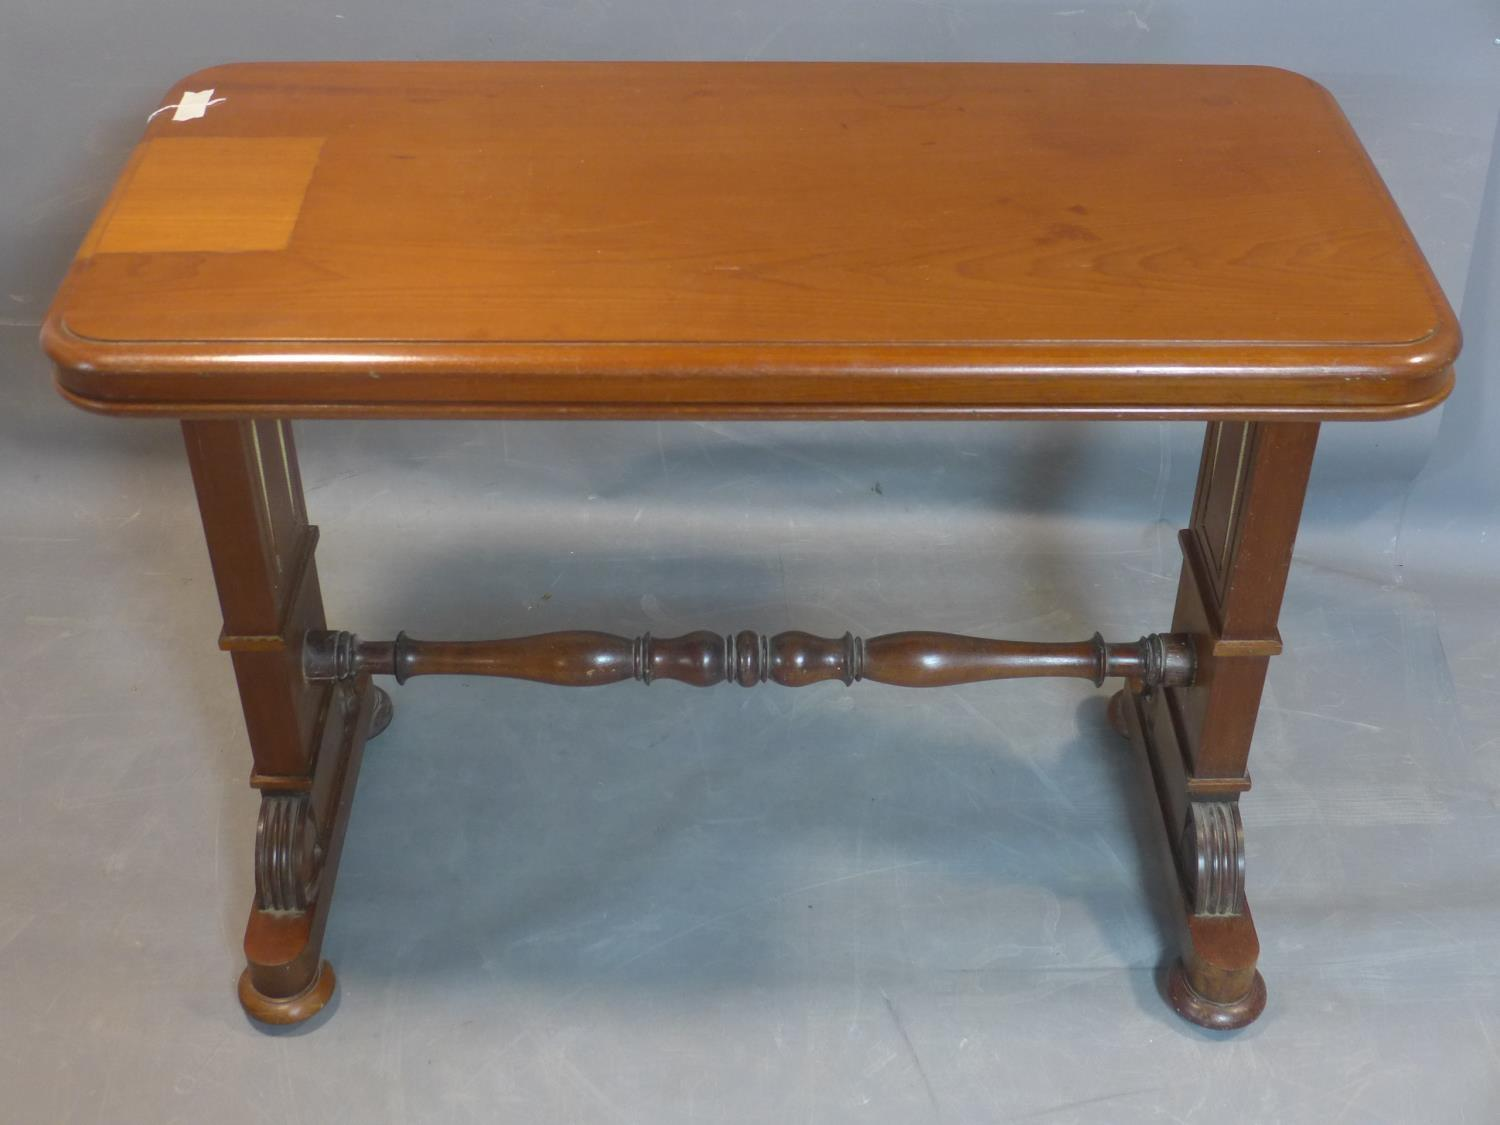 Lot 119 - A 19th century mahogany three tier metamorphic buffet, on carved supports joined by turned